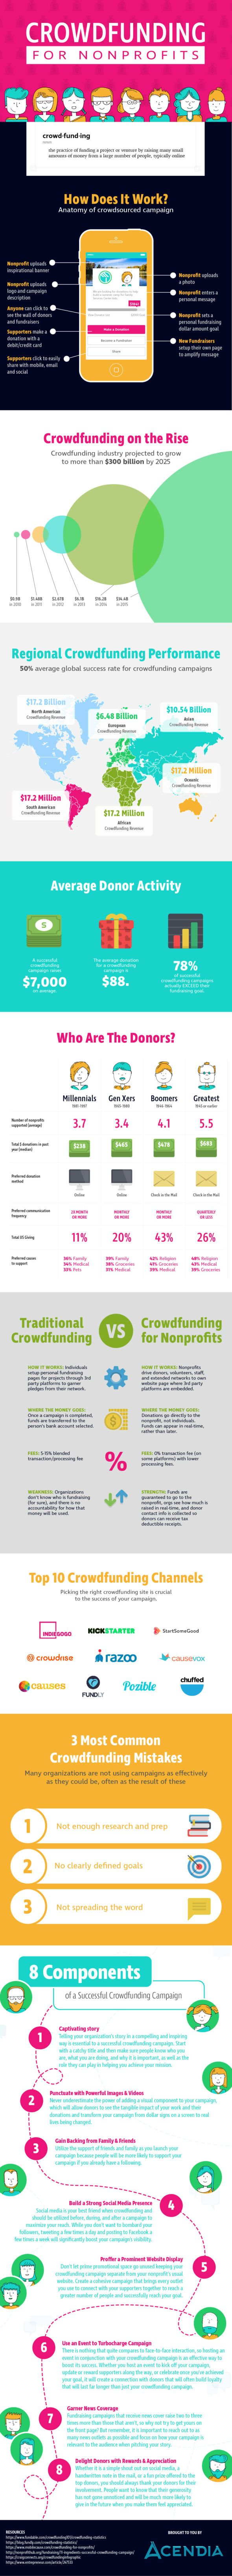 Quintessential Crowdfunding Guide for Nonprofits